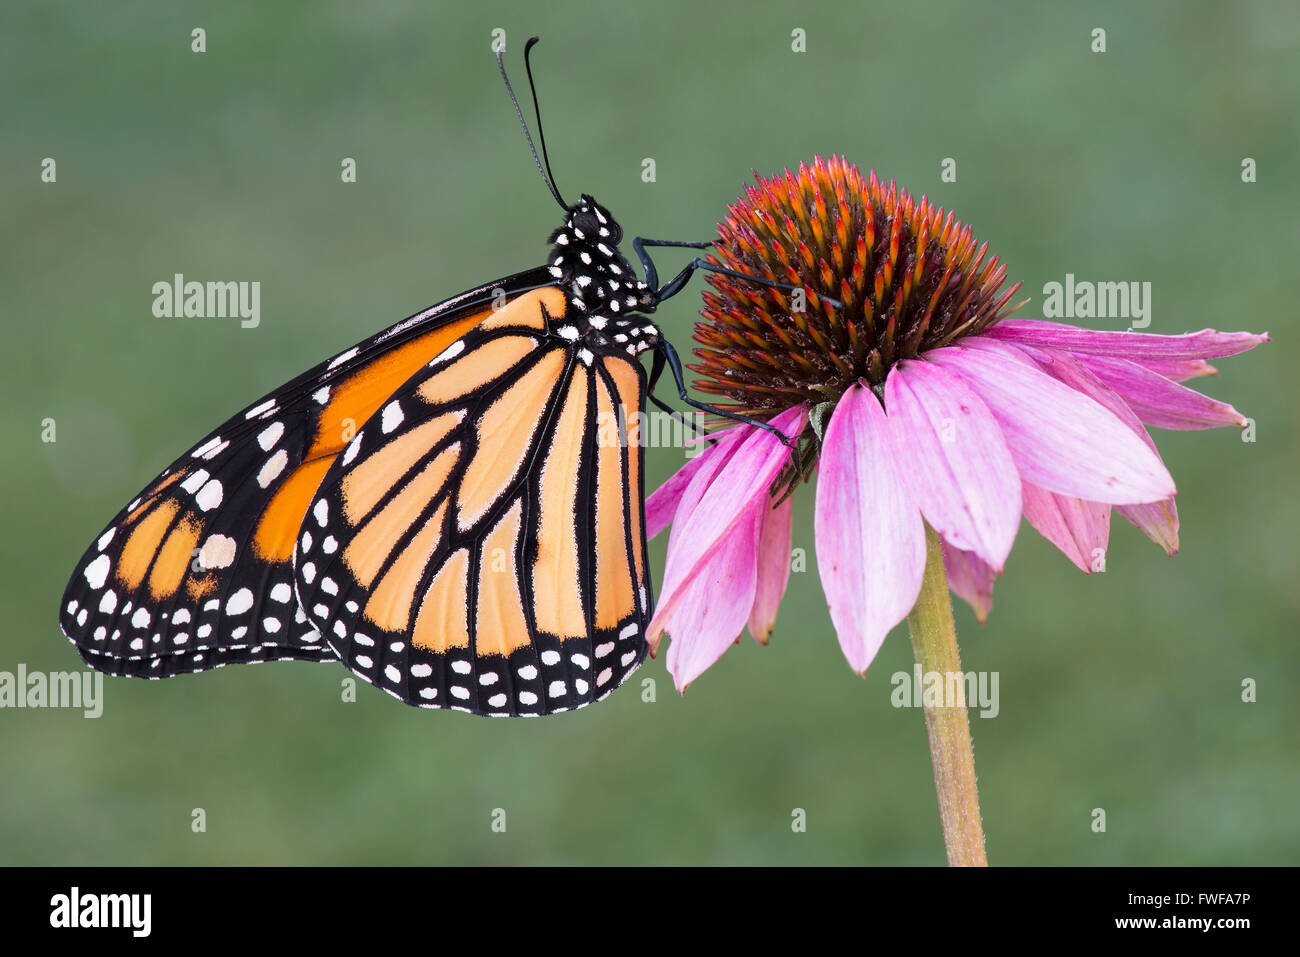 Monarch Butterfly Danaus plexippus adult  resting on Purple Coneflower (Echinacea purpurea) Michigan USA - Stock Image